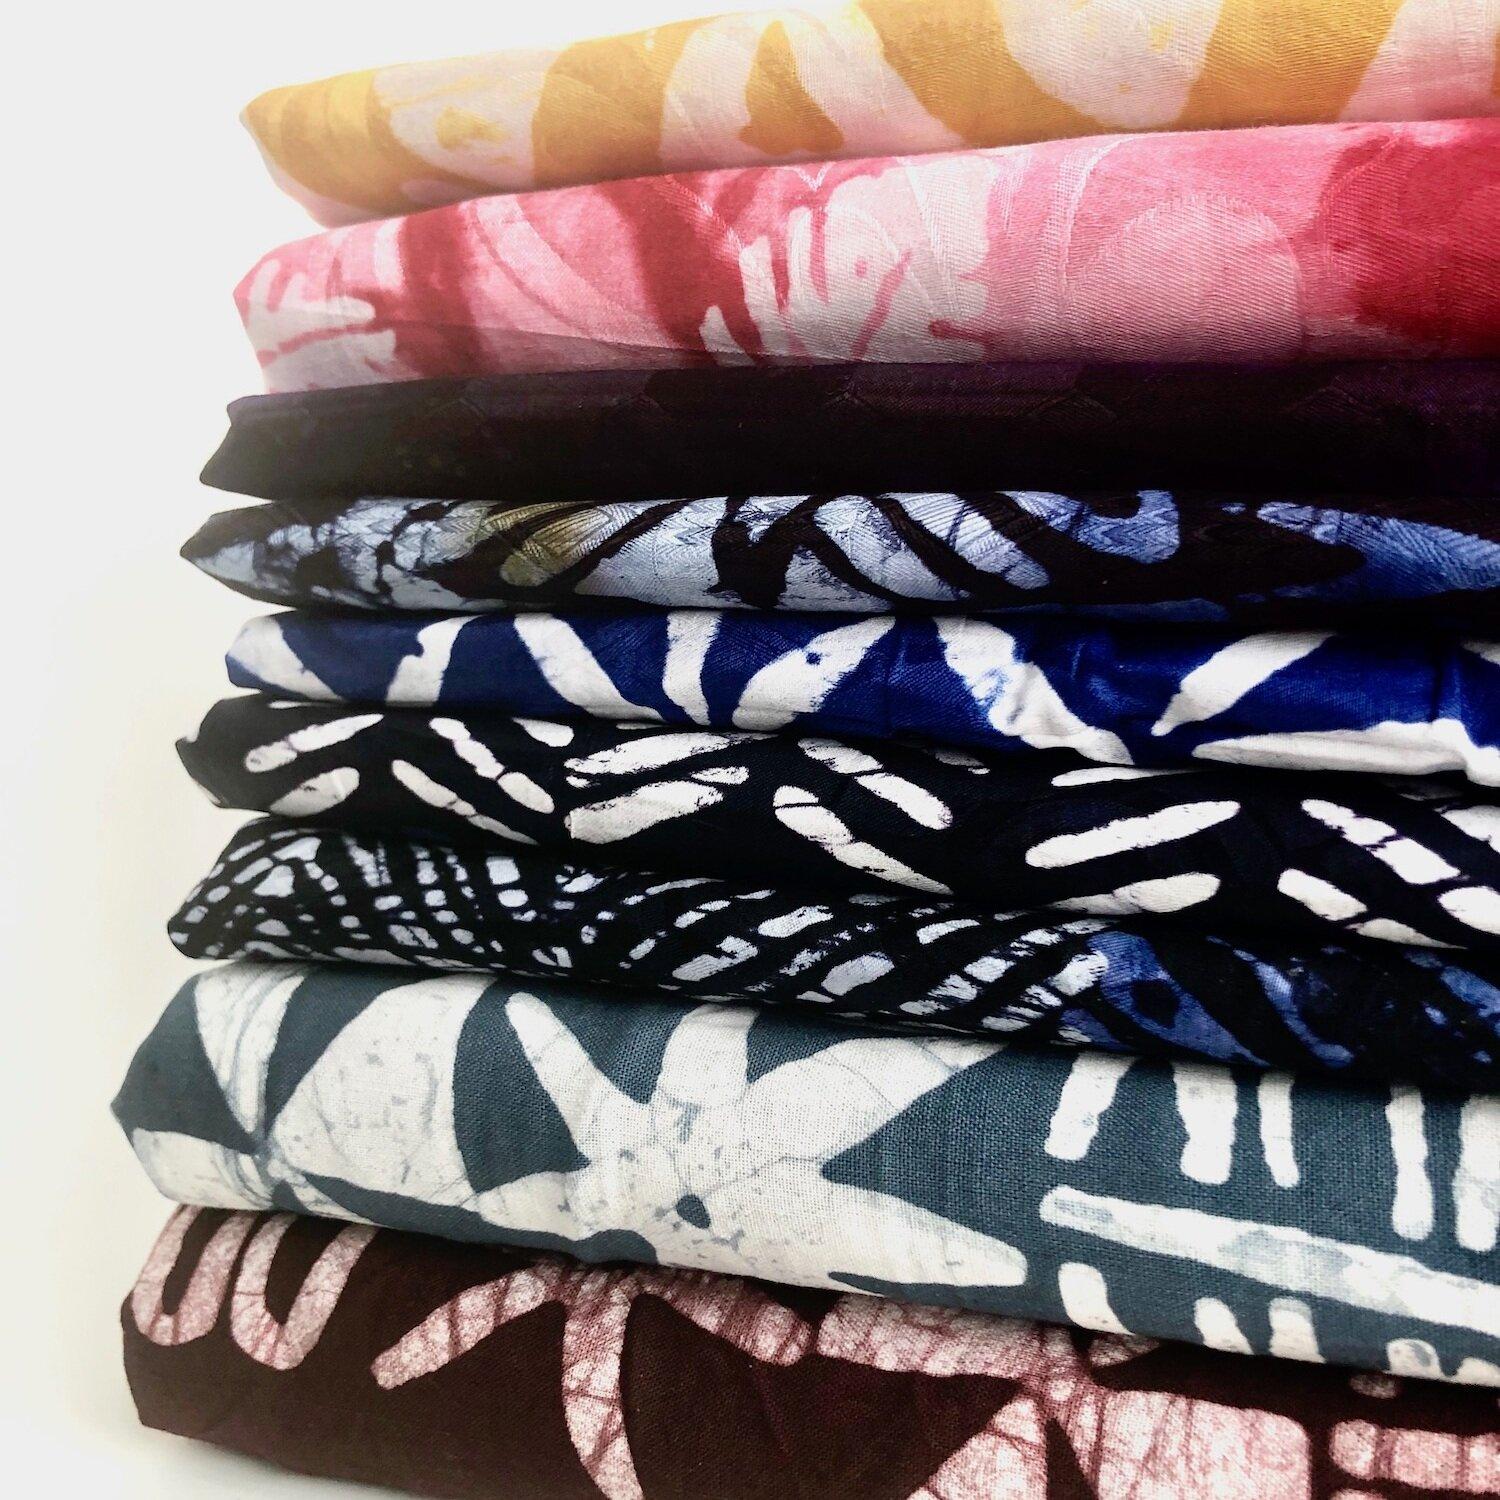 HAND-DYED PRINTS - Batik & Tie Dye from West Africa